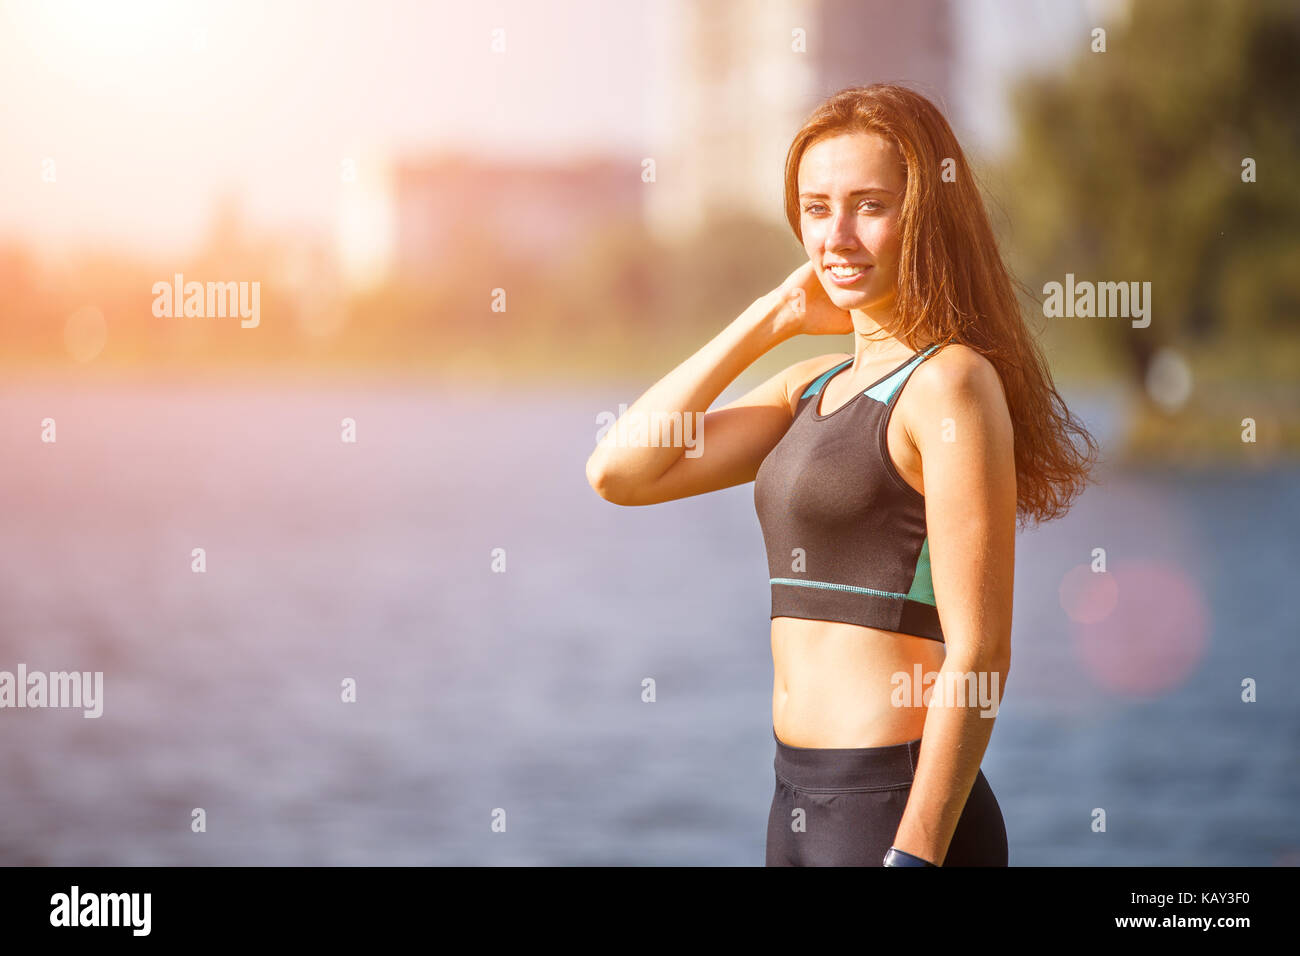 Portrait of young sporty woman resting after jogging in park near lake. Portrait of athletic girl in black top after - Stock Image